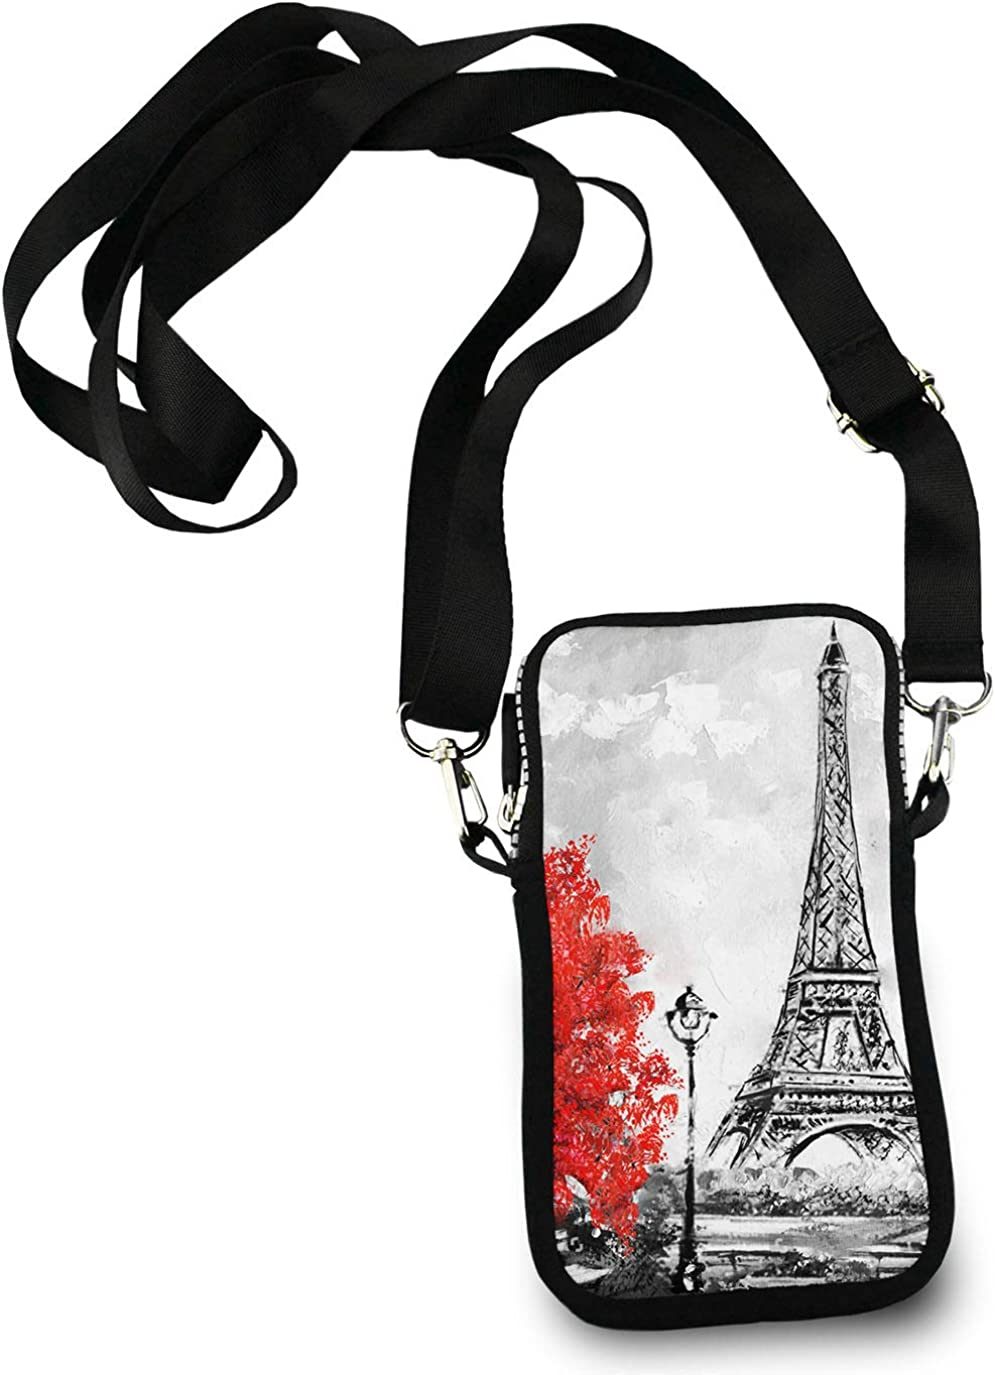 Roomy Pockets Series Oil Painting Paris European City Landscape France Eiffel Tower Small Crossbody Bag Cell Phone Purse Wallet For Women Girls